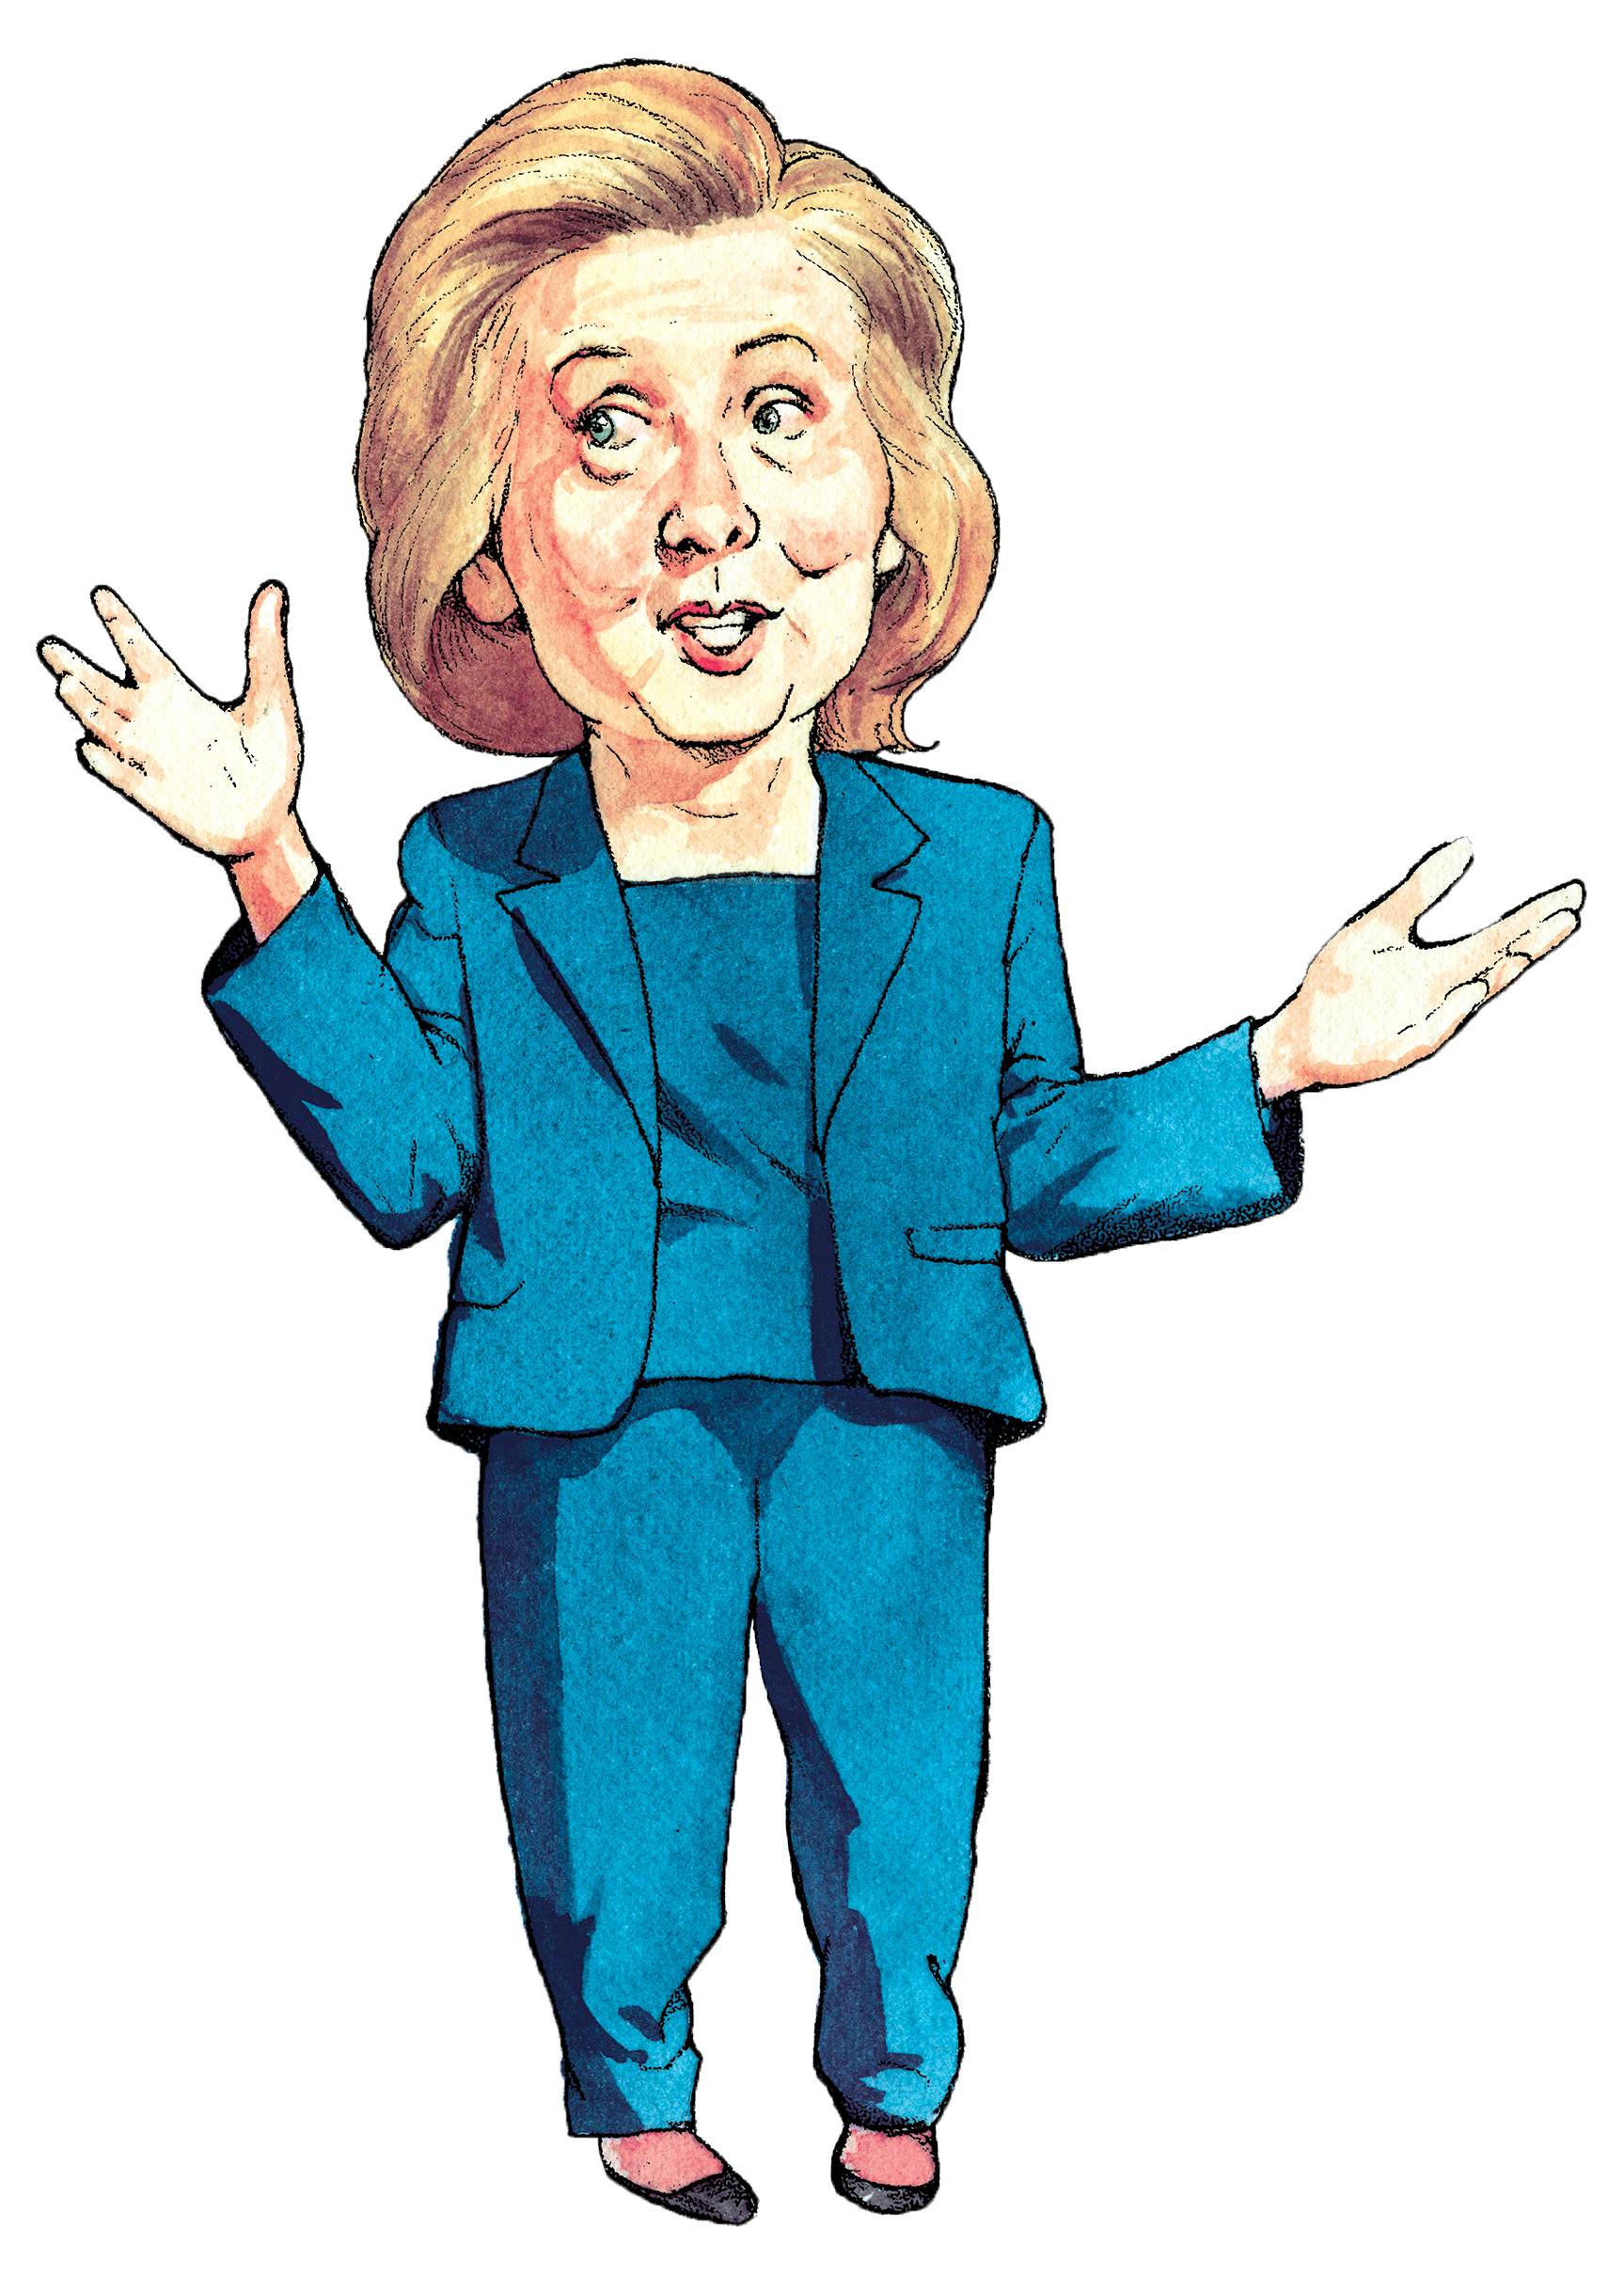 Standing United Clinton Behavior Us States Hillary PNG Image